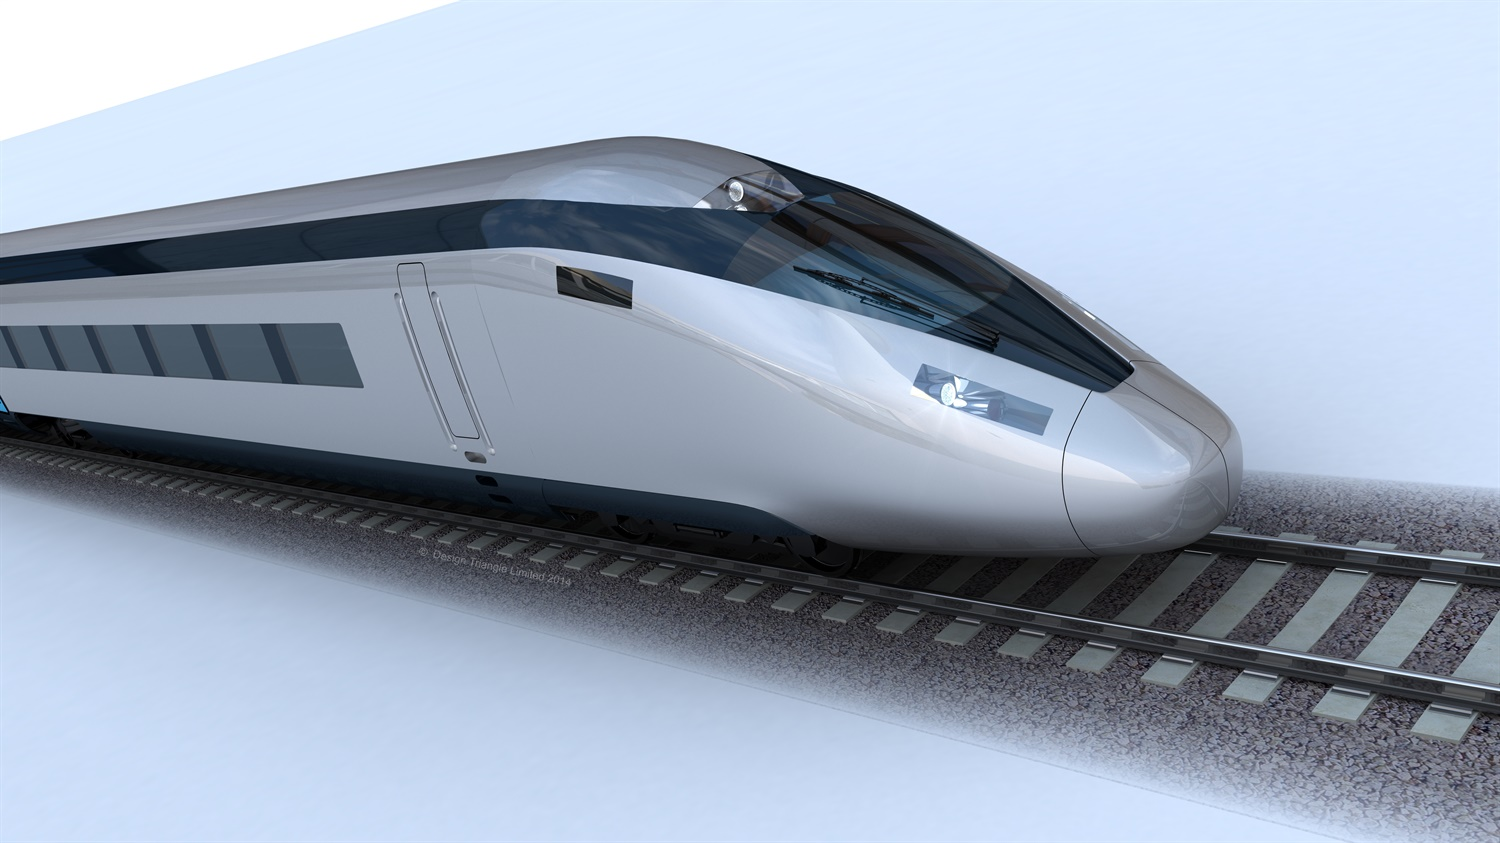 HS2 leaders urge NI companies to bid for £10bn phase 1 contracts